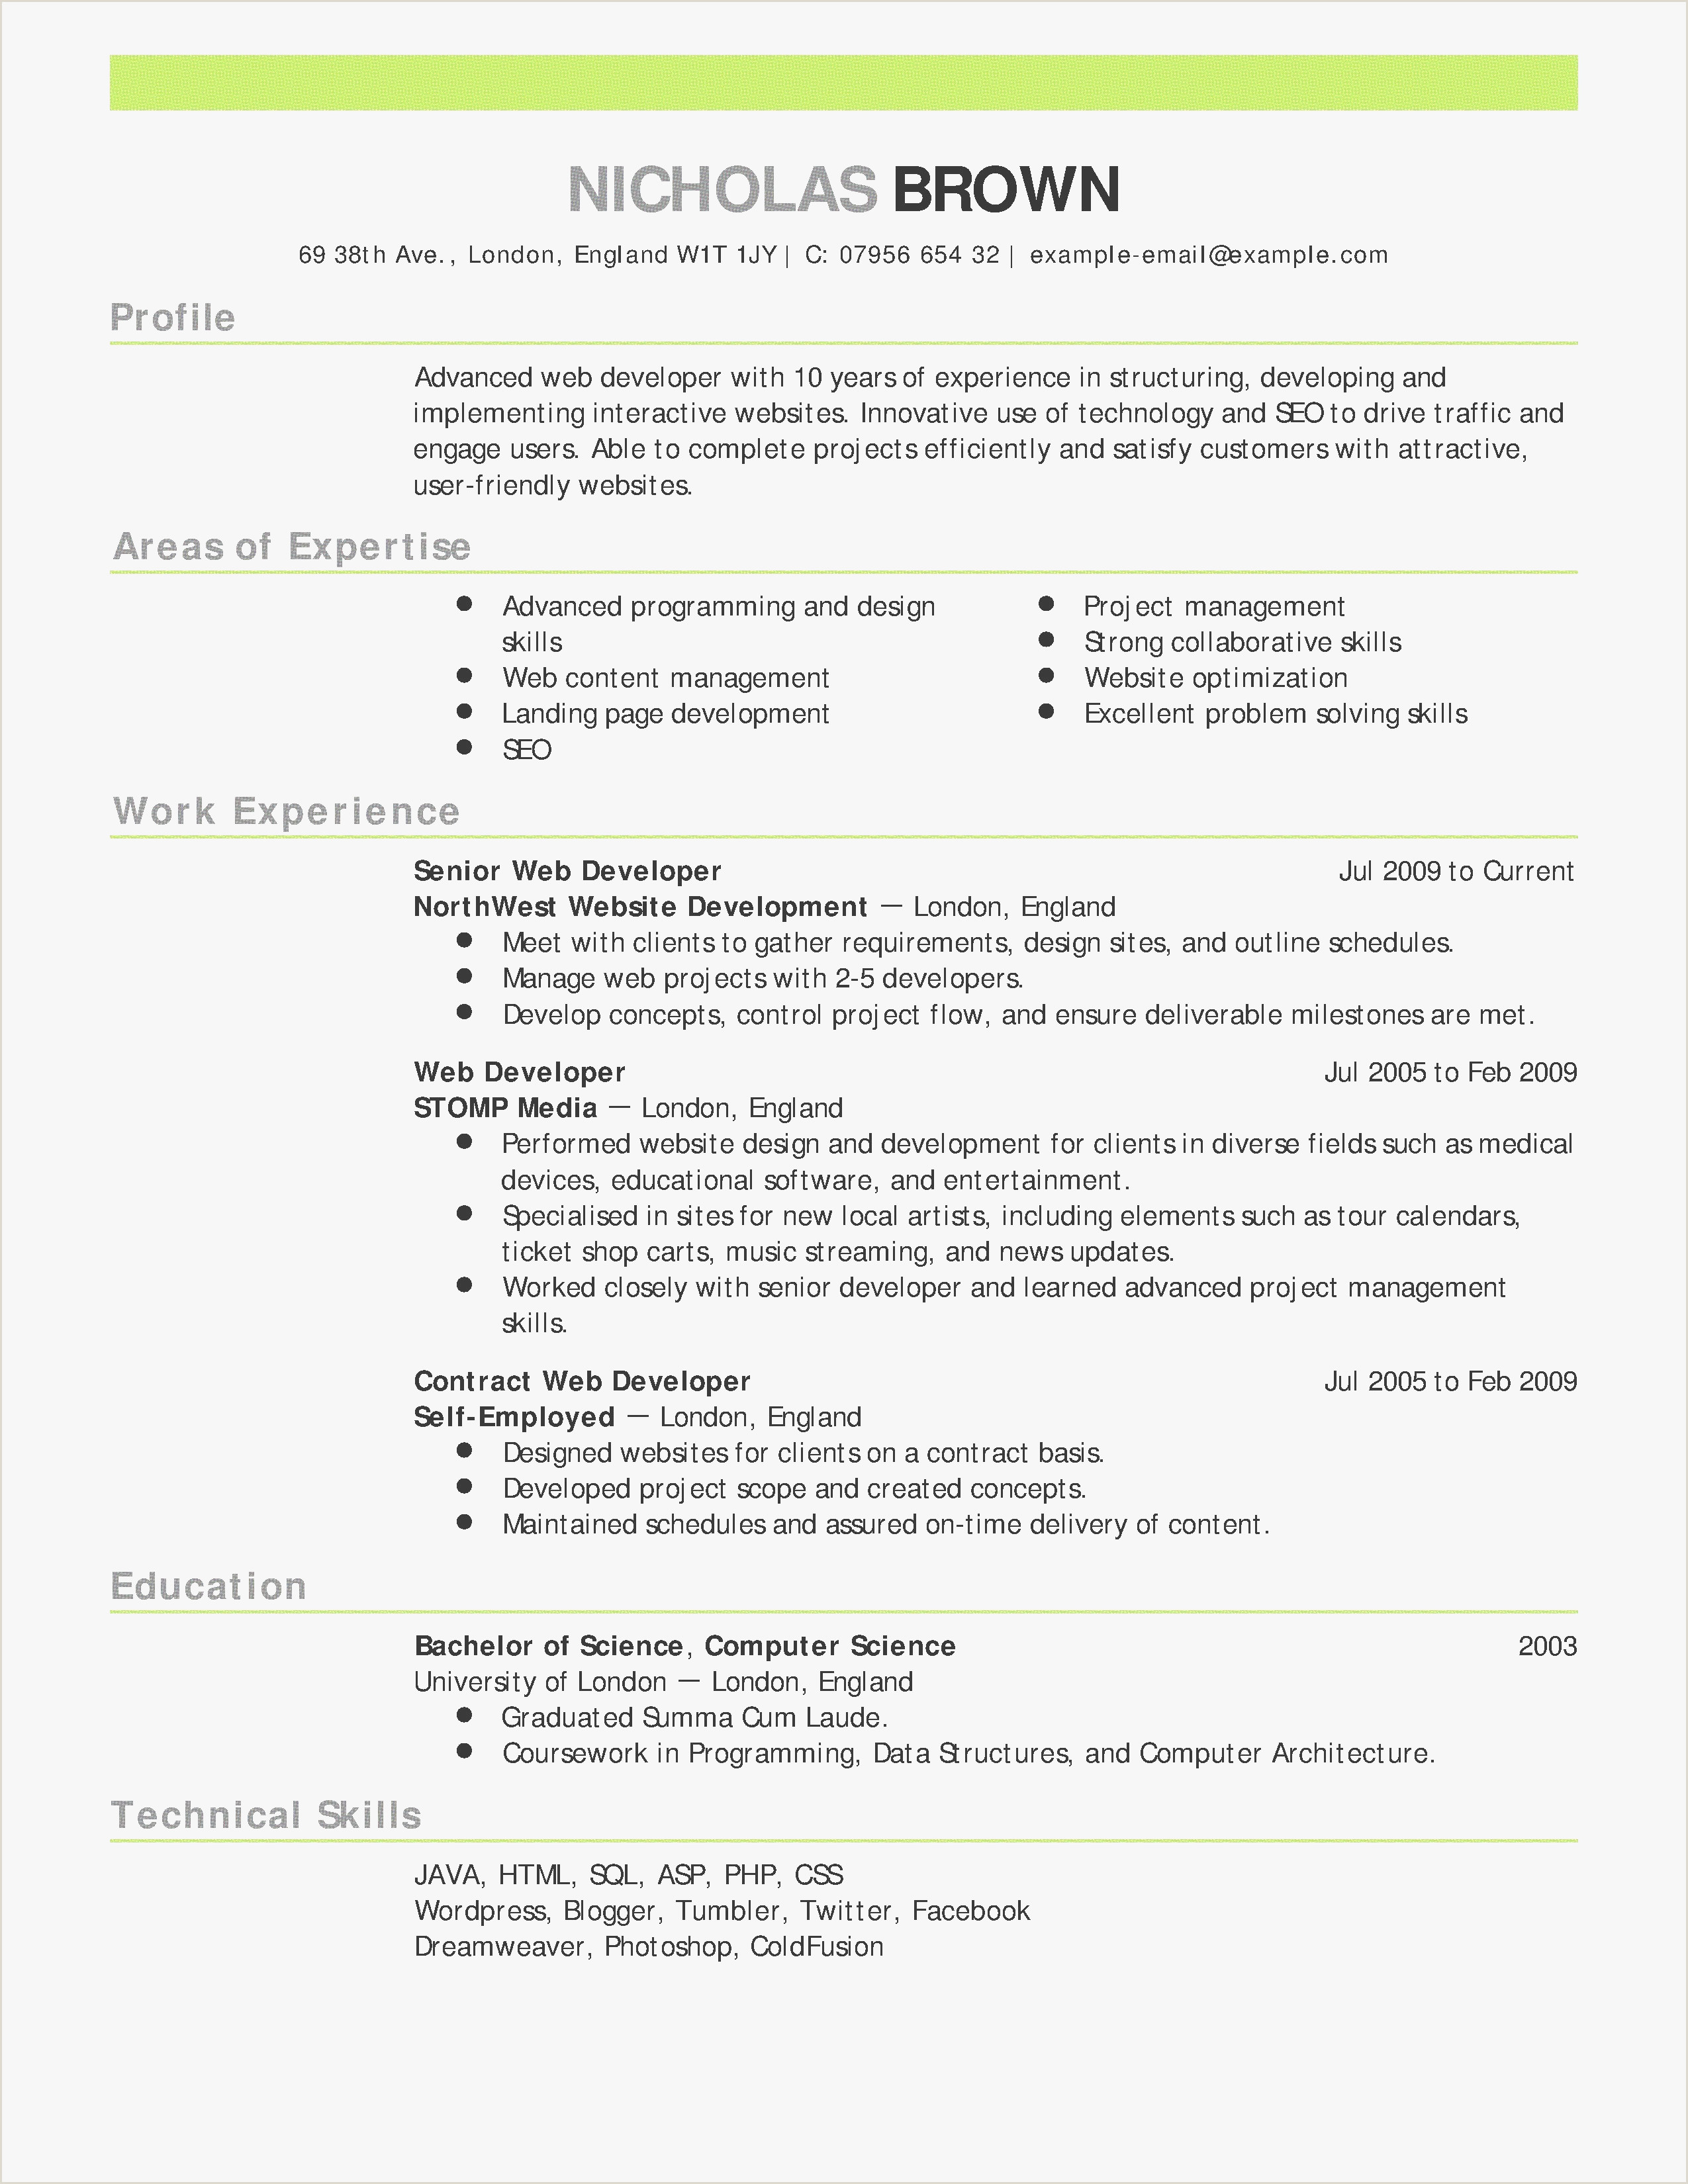 Database Administrator Resume Entry Level Entry Level Web Developer Cover Letter Awesome Human